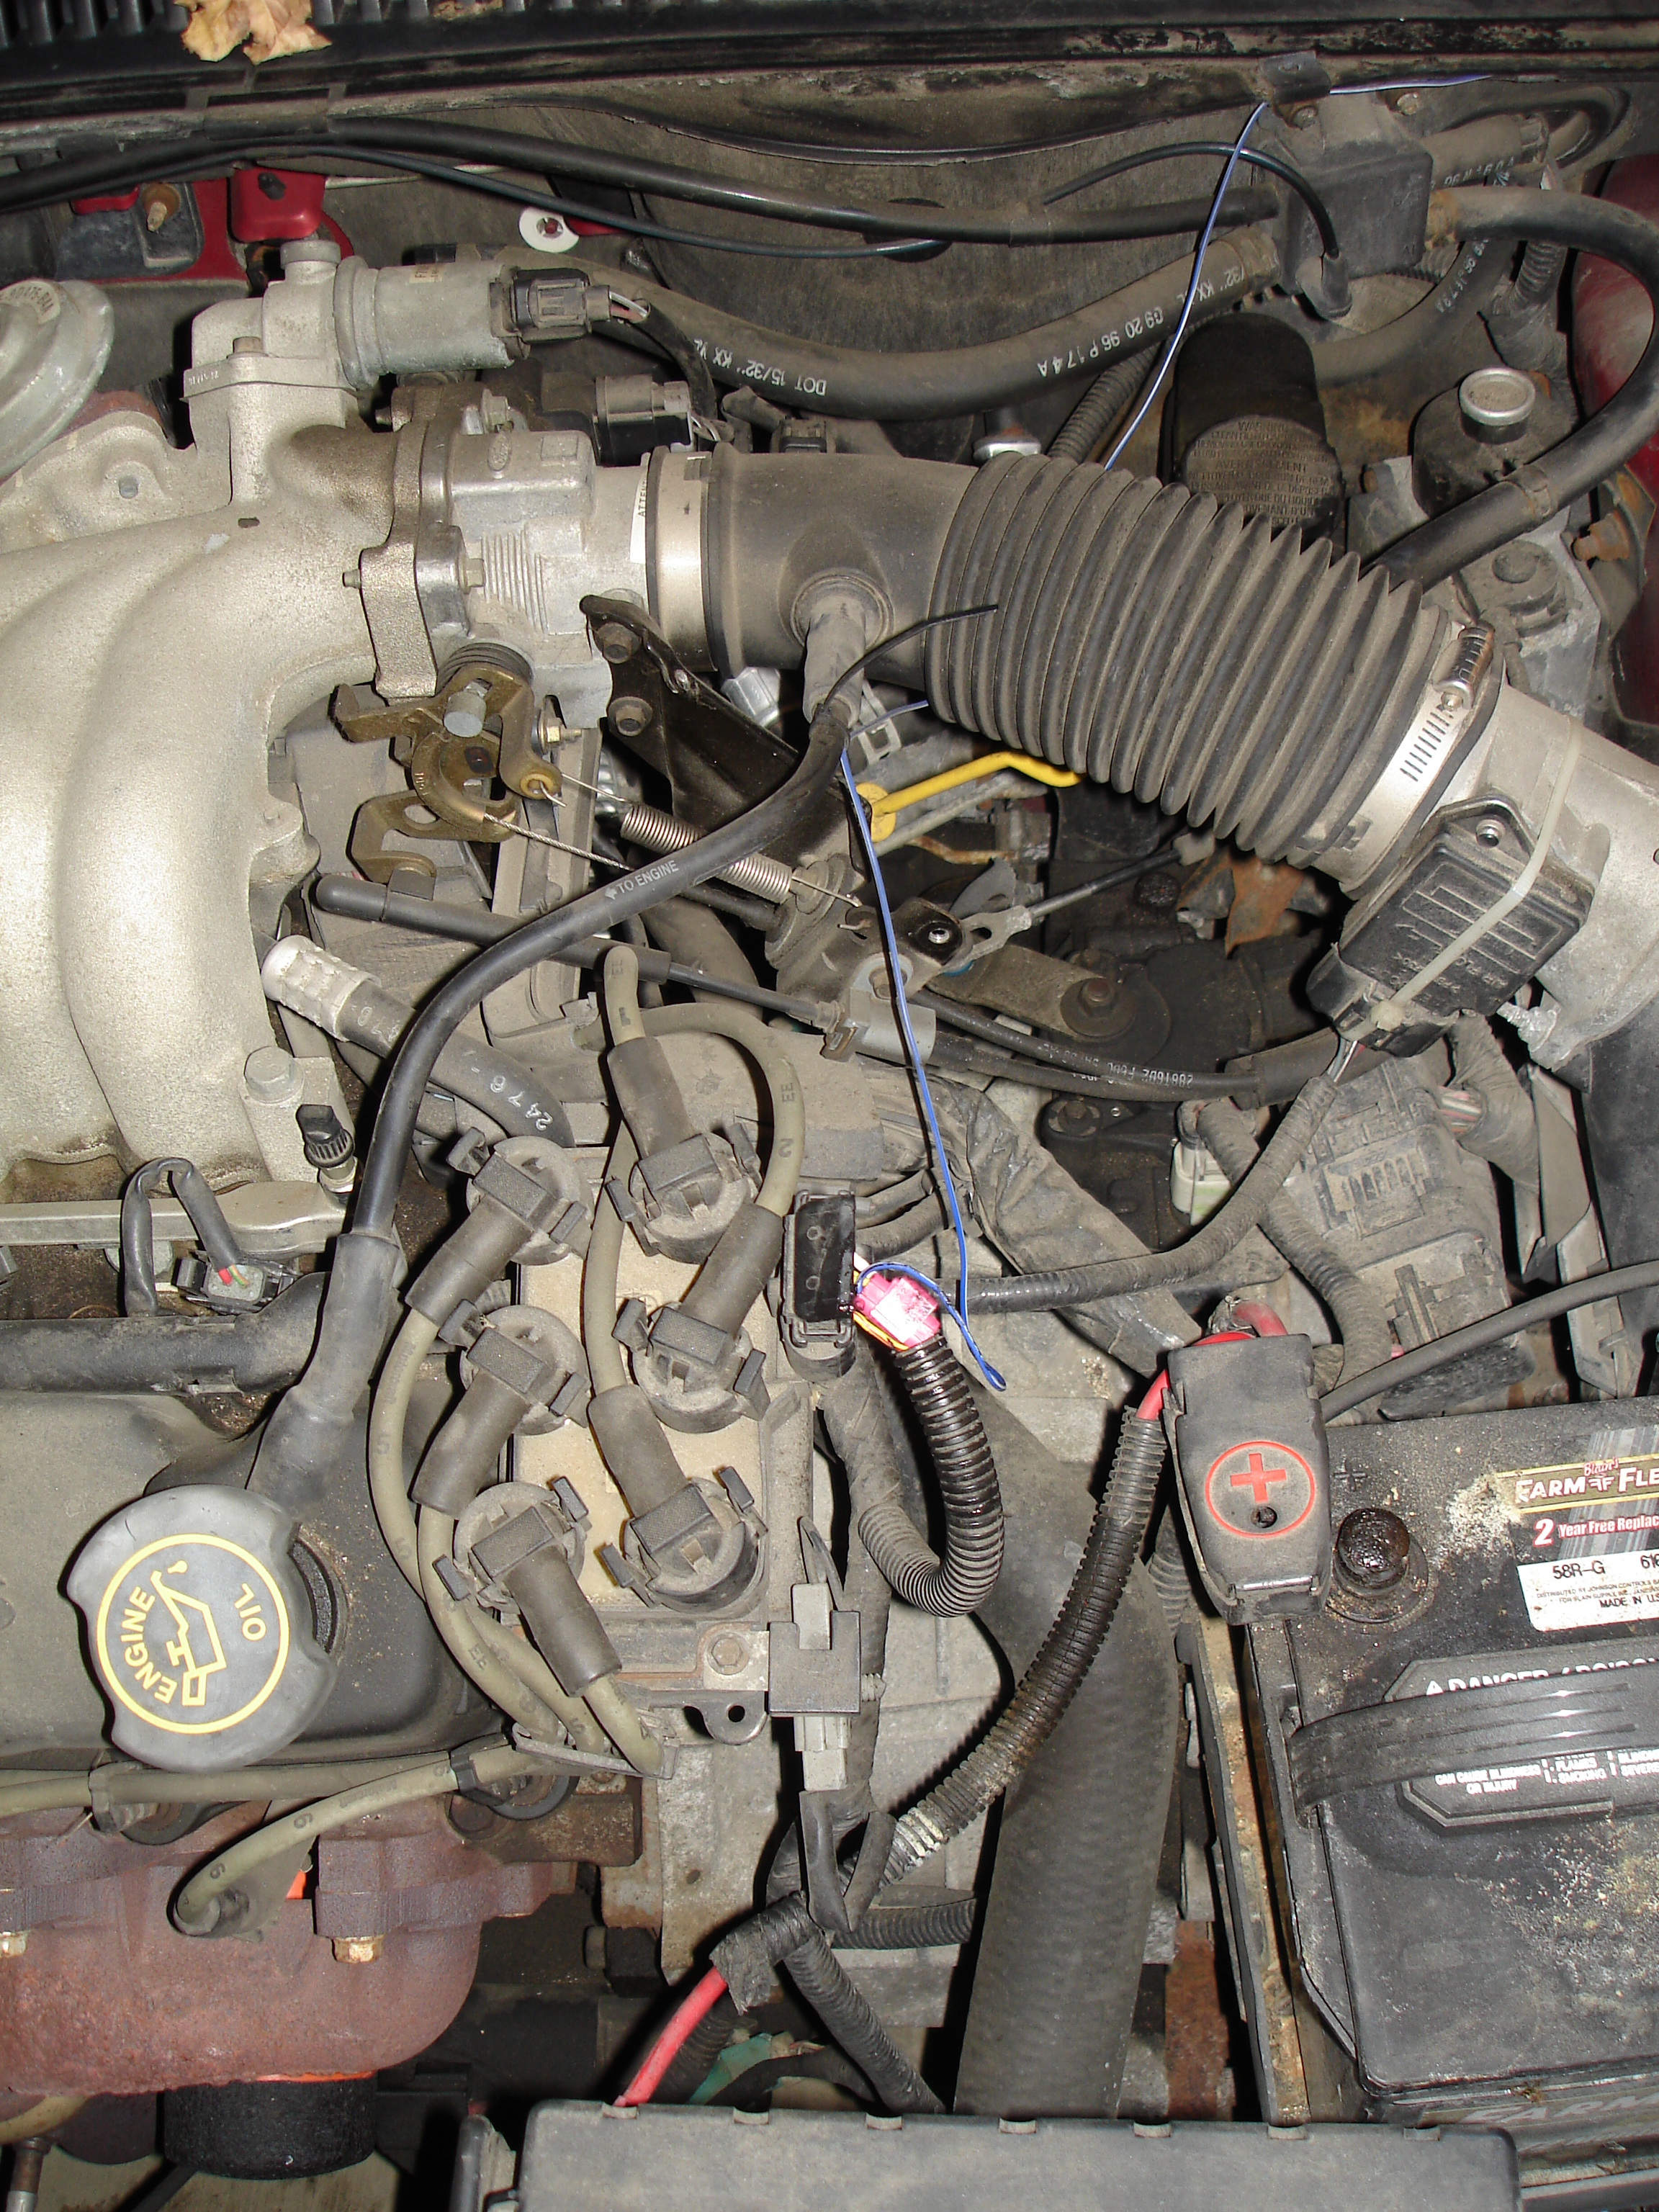 05 Silverado Crankshaft Alignment Sensor Wiring Diagram Library Engine Replace A Camshaft Position 1997 Ford Taurus